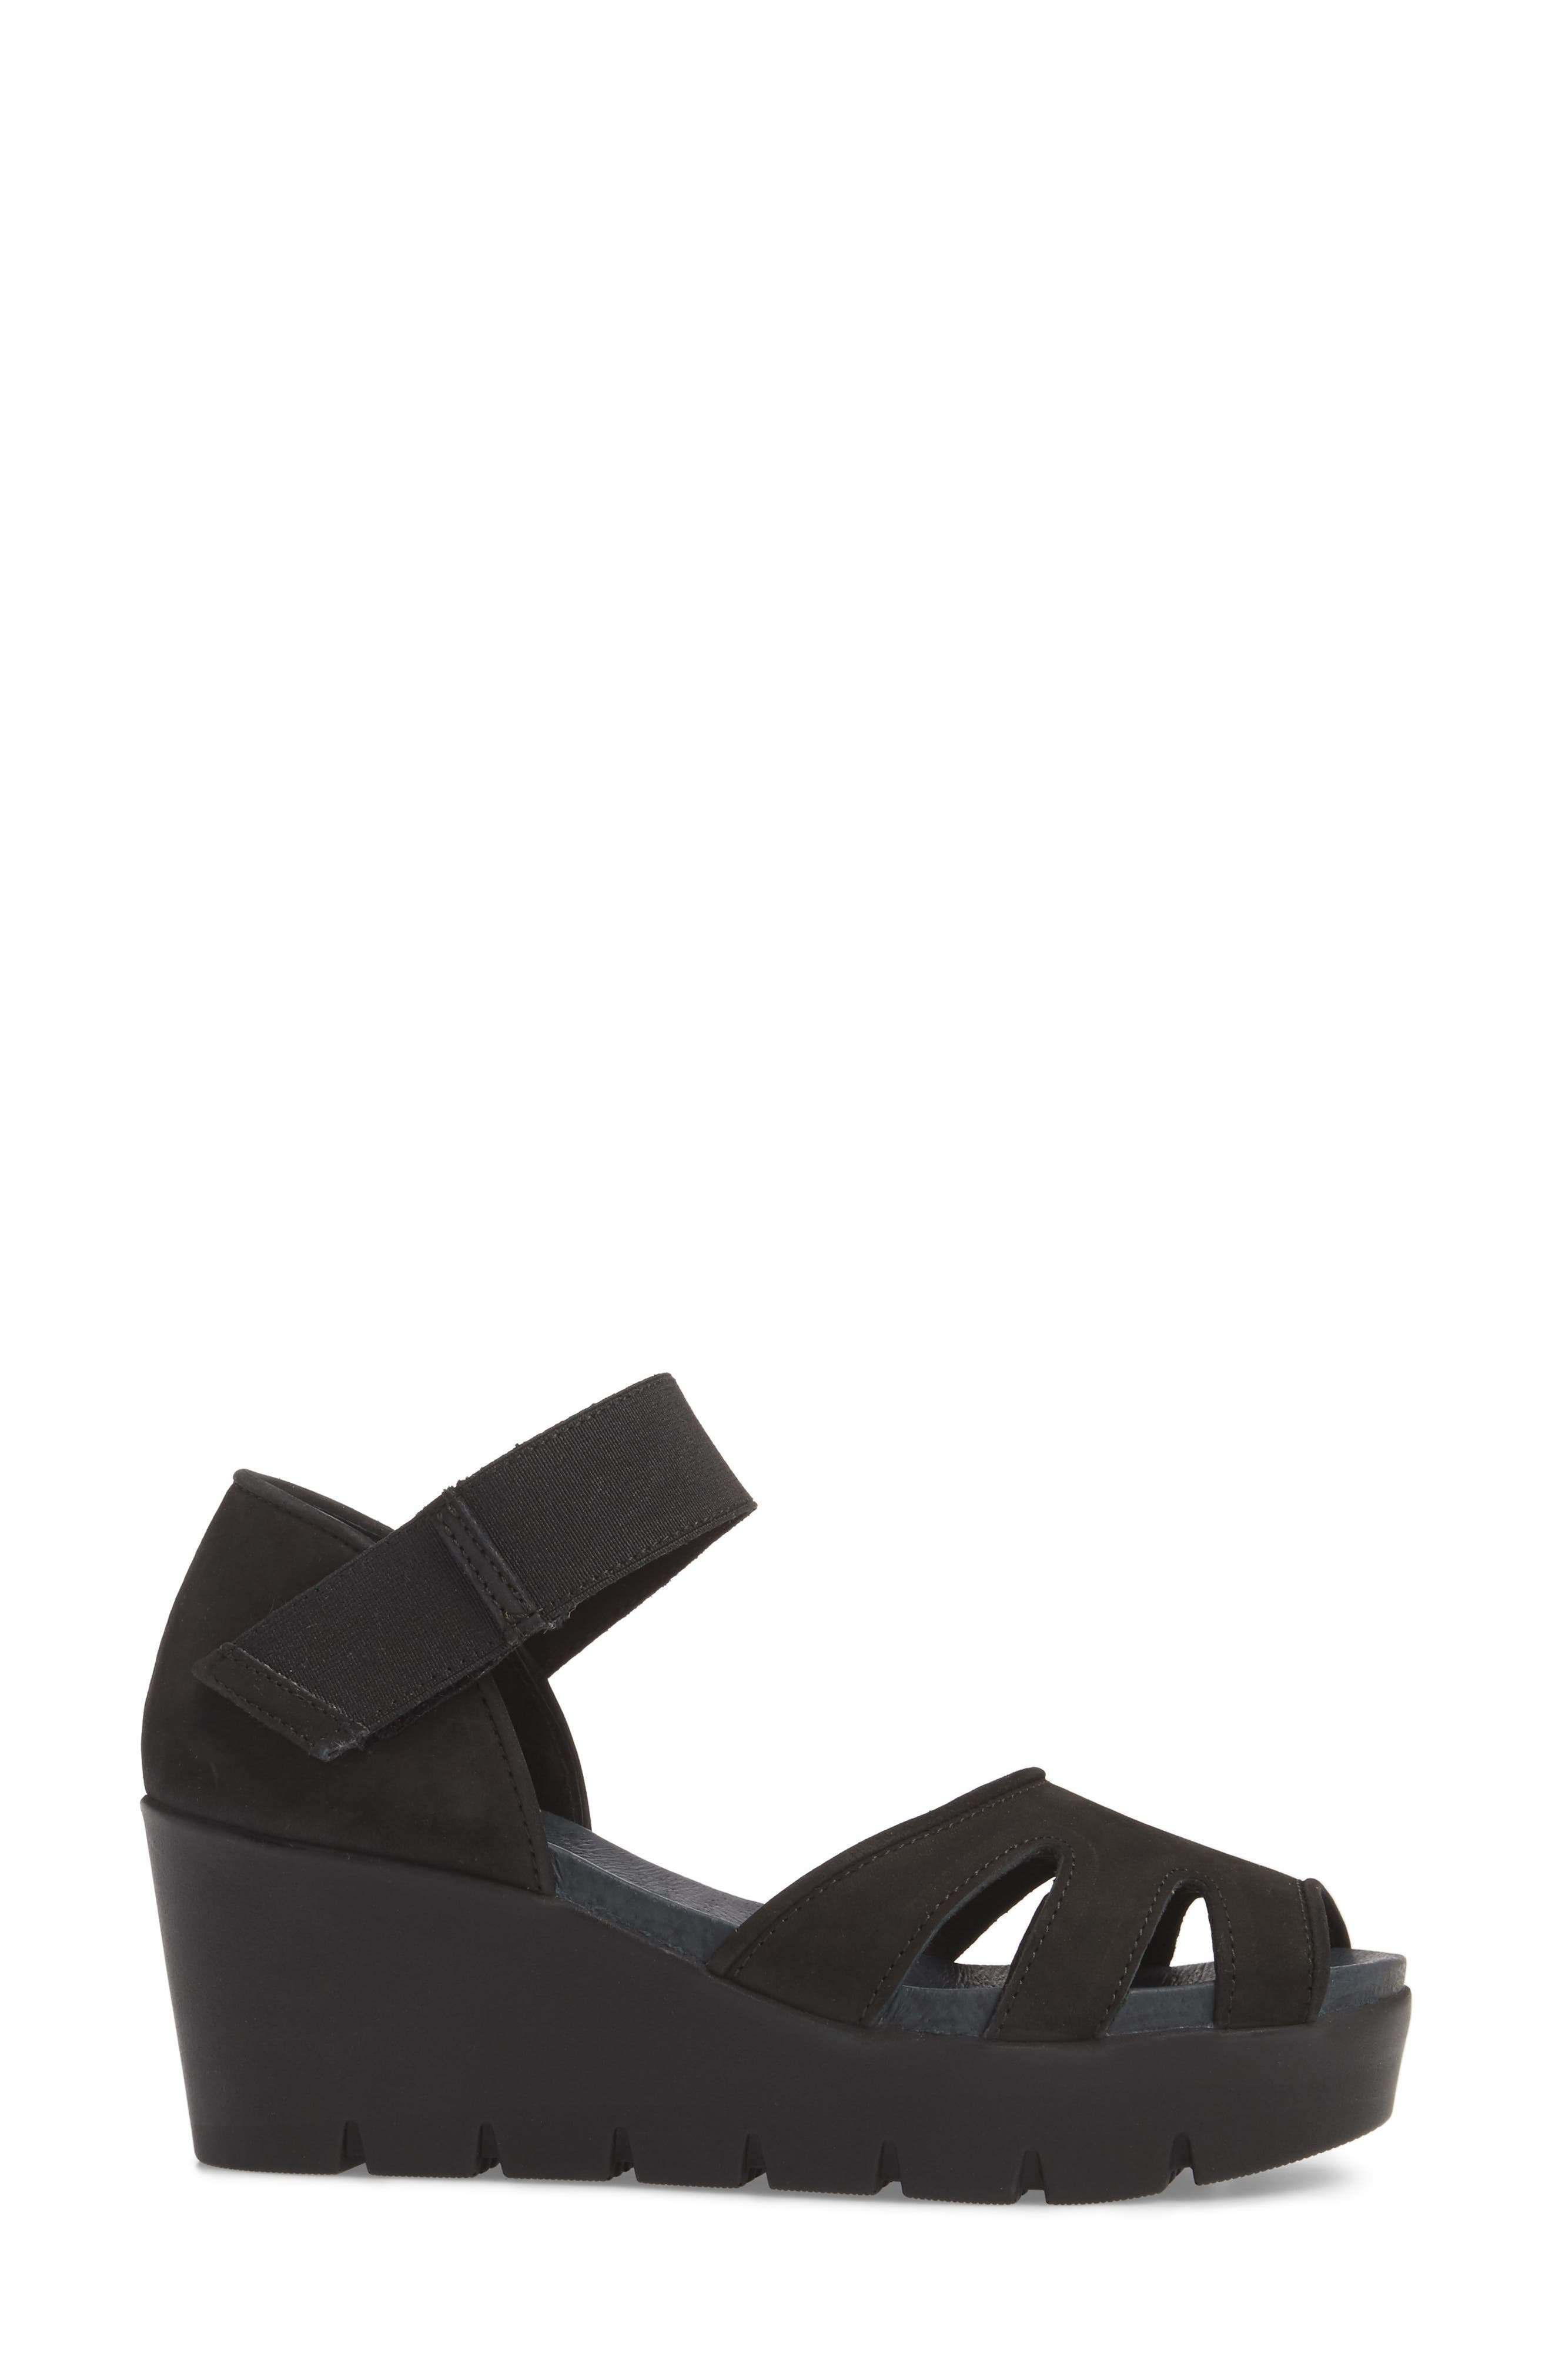 Sharon Platform Wedge Sandal,                             Alternate thumbnail 3, color,                             BLACK NUBUCK LEATHER